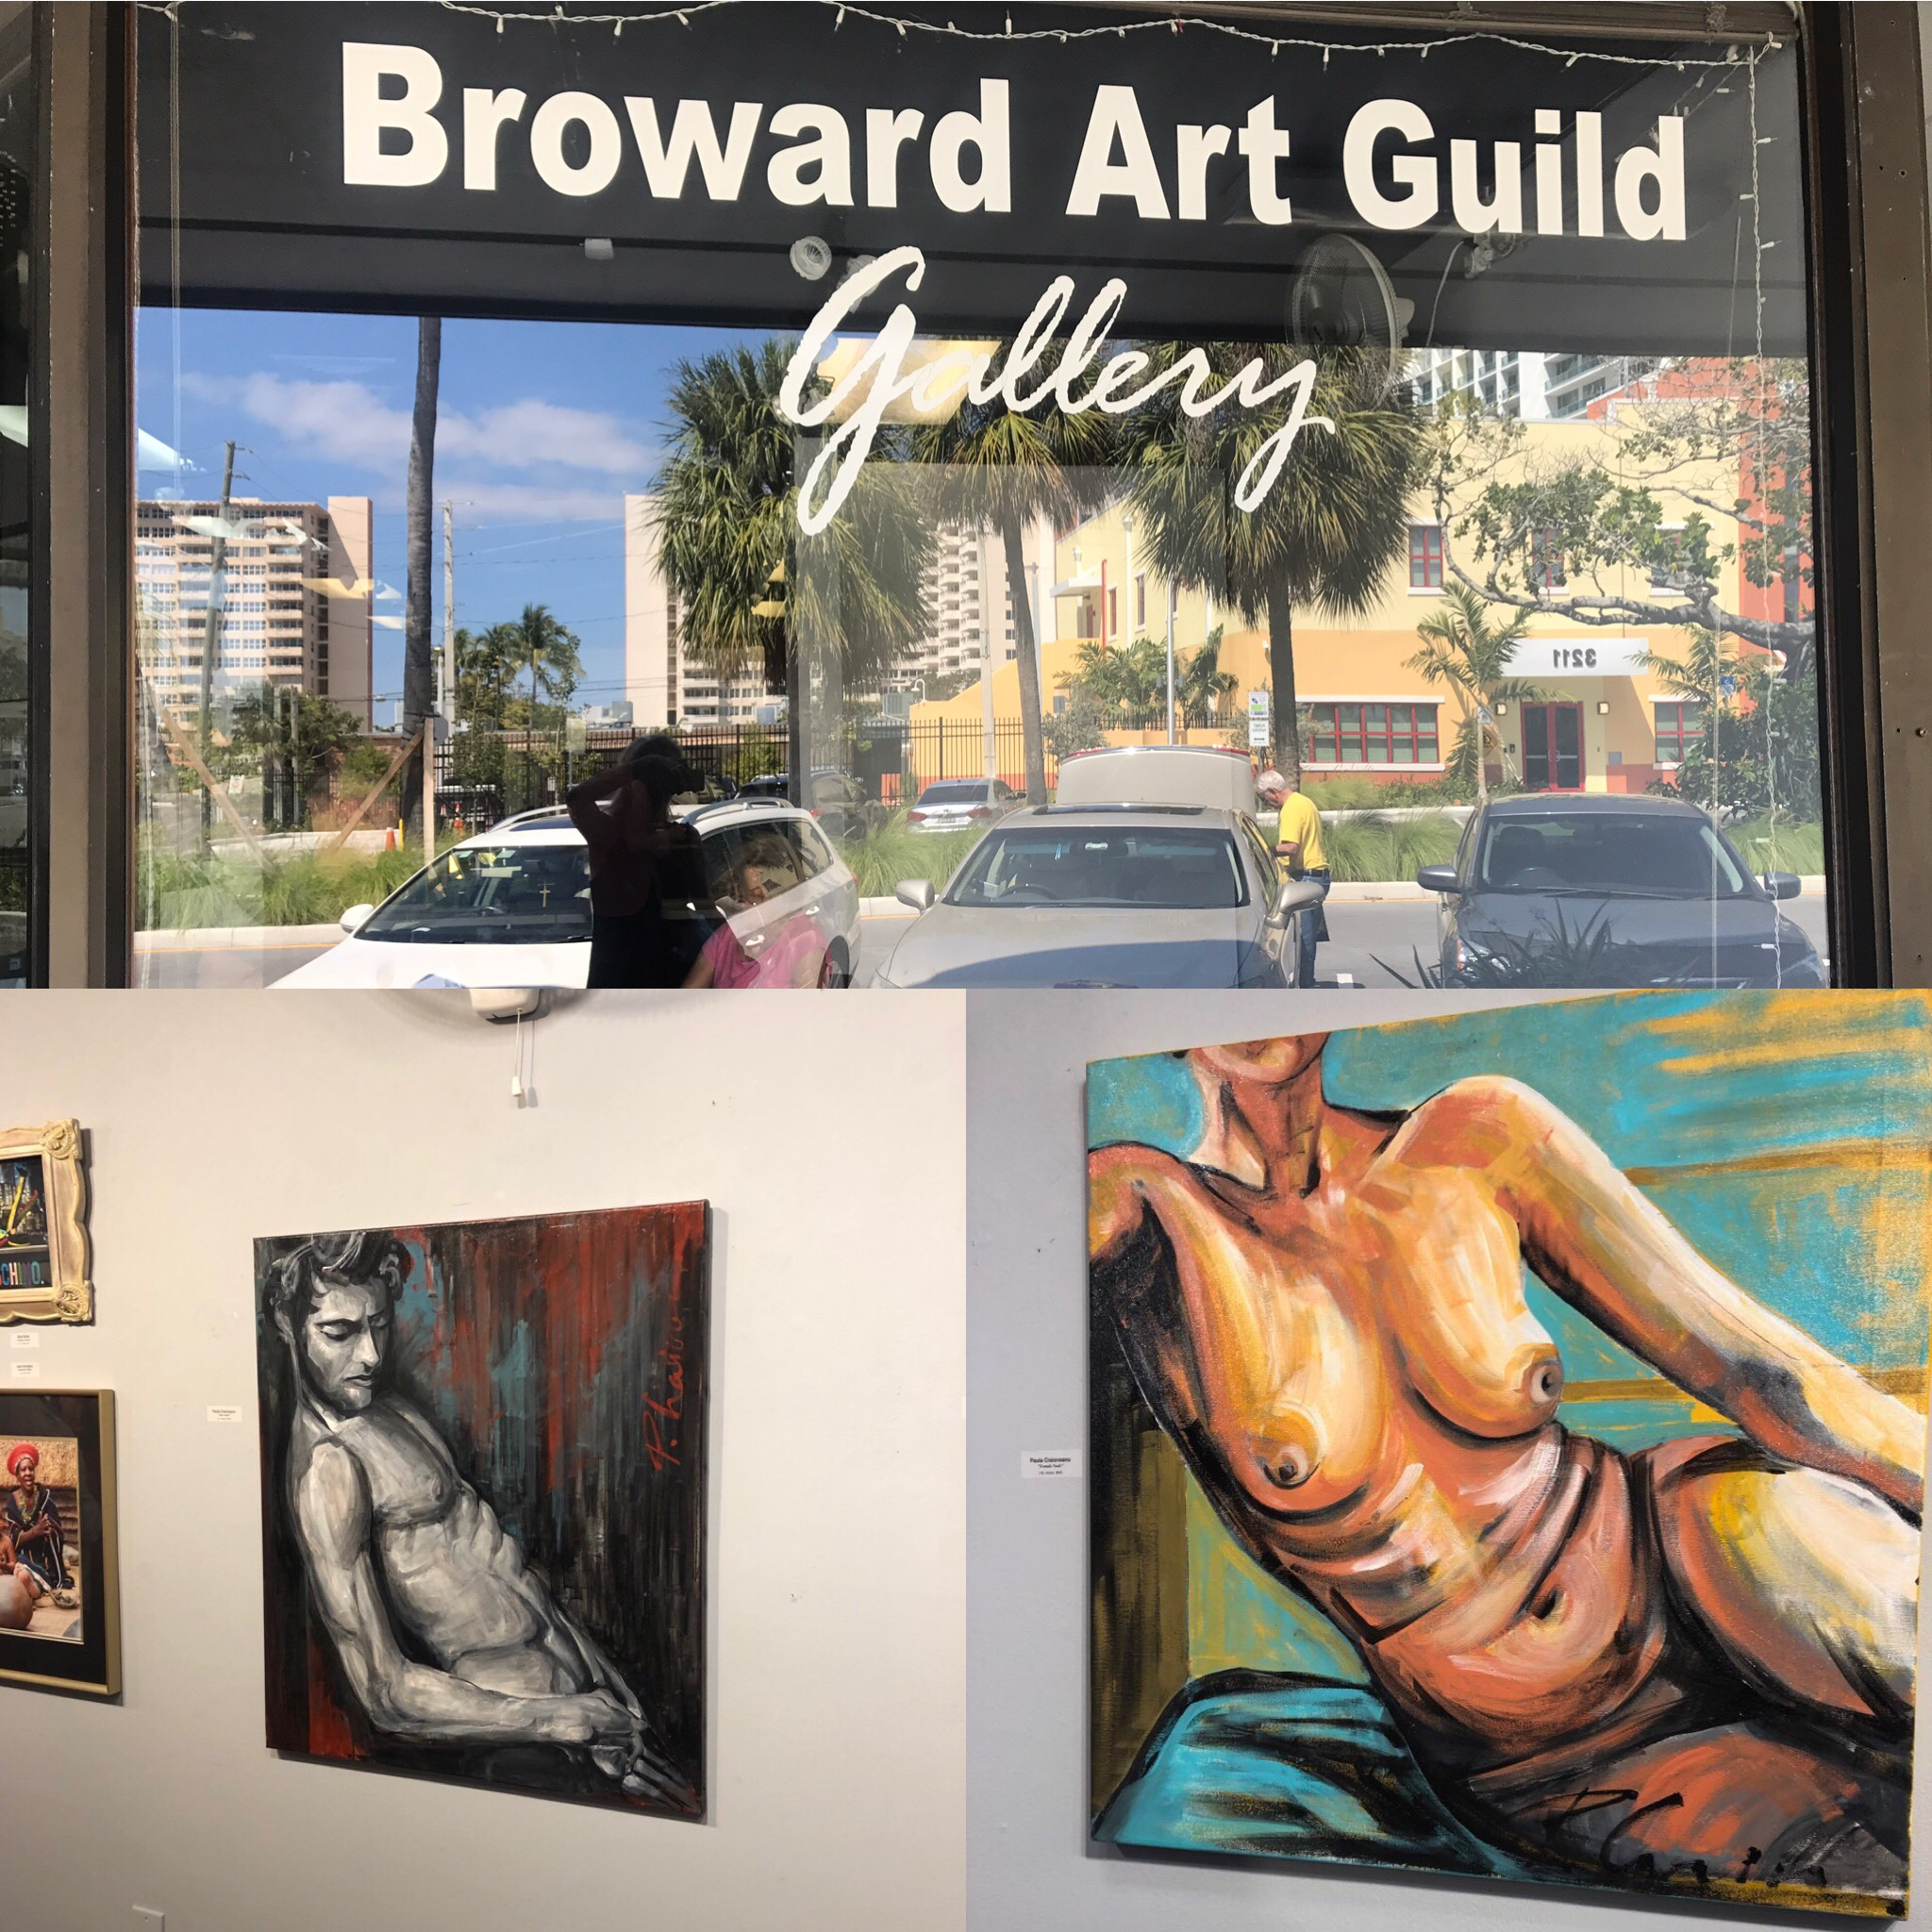 broward art guild paula craioveanu 1.jpg